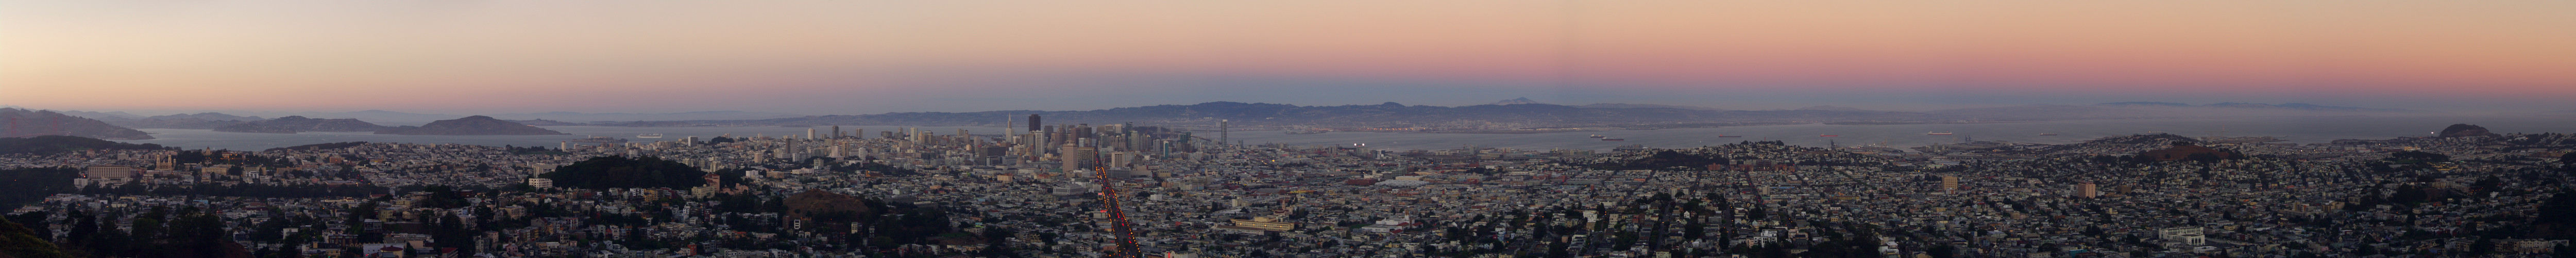 Twilight panorama of San Francisco from Twin Peaks